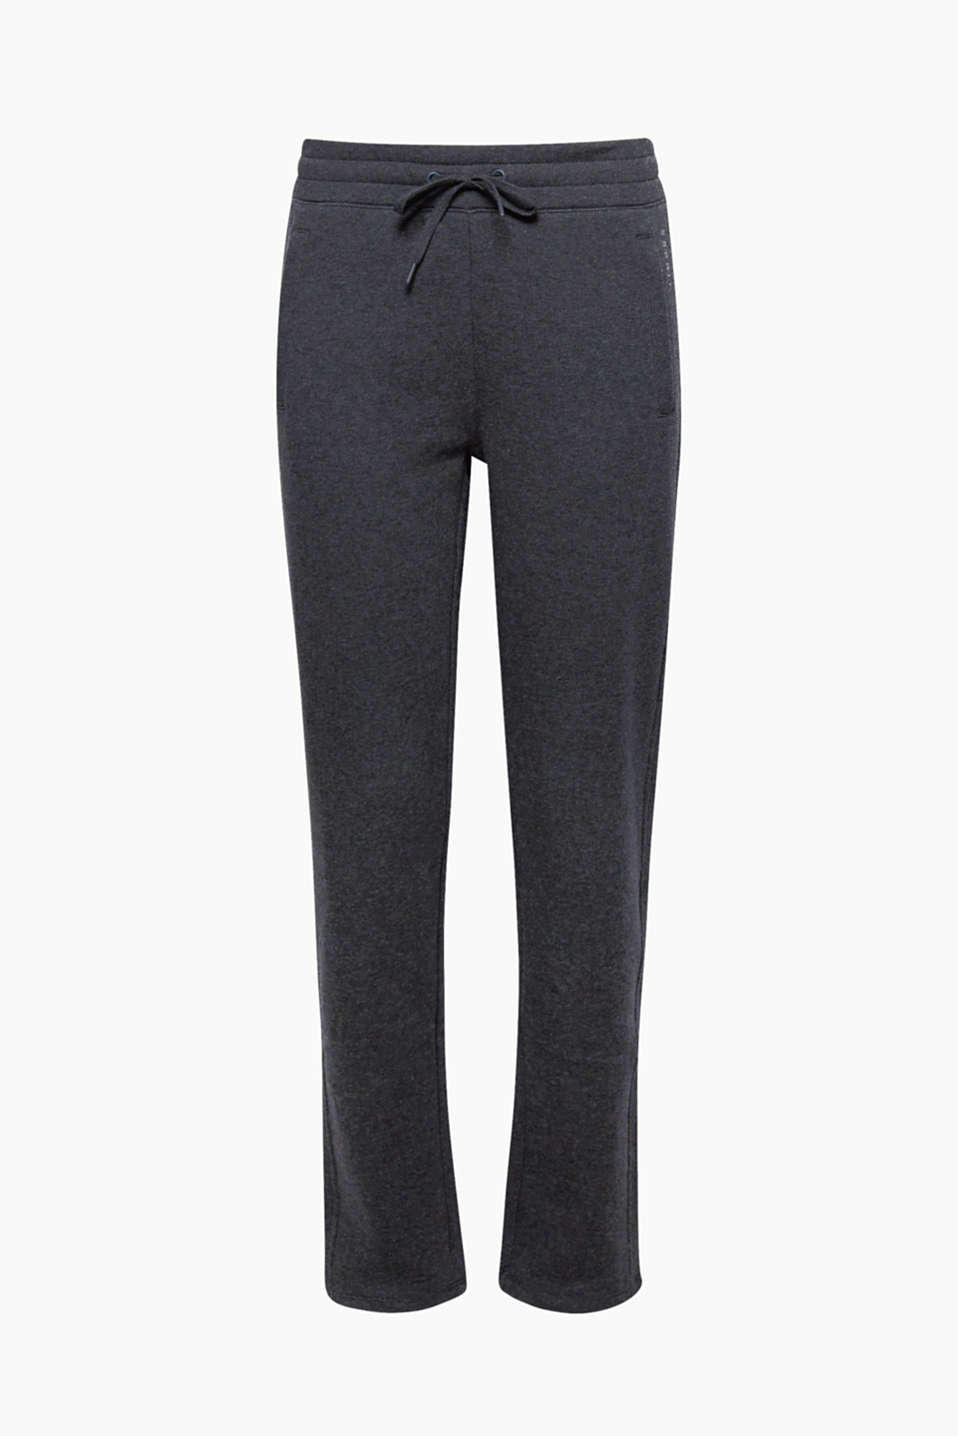 These sweat tracksuit bottoms featuring a brushed inner surface, loose cut and wide elasticated waistband are mega comfy!